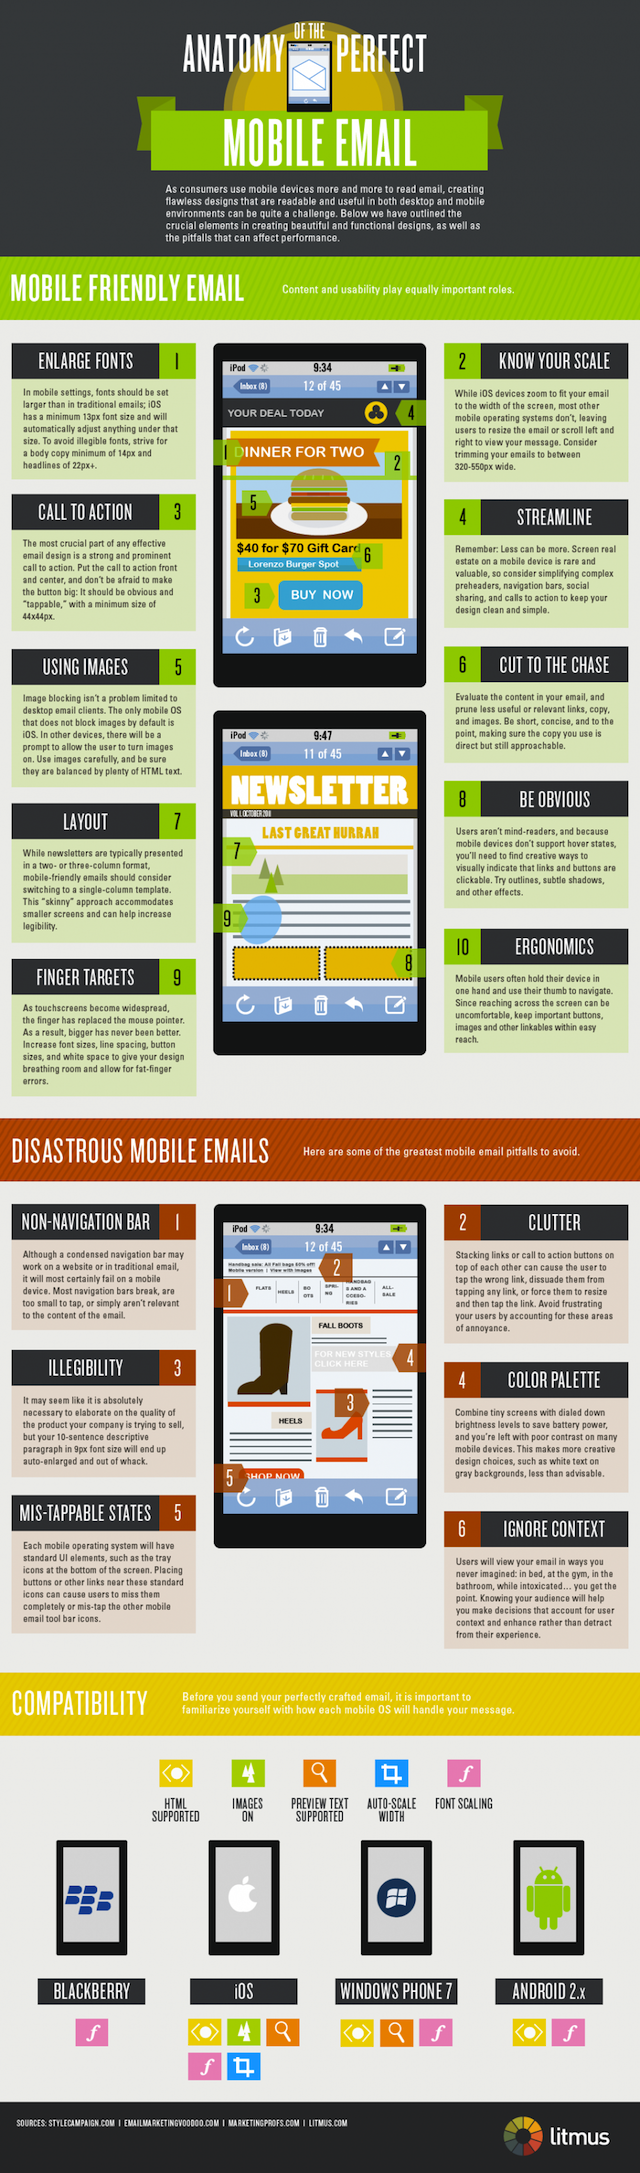 mobile email design infographic